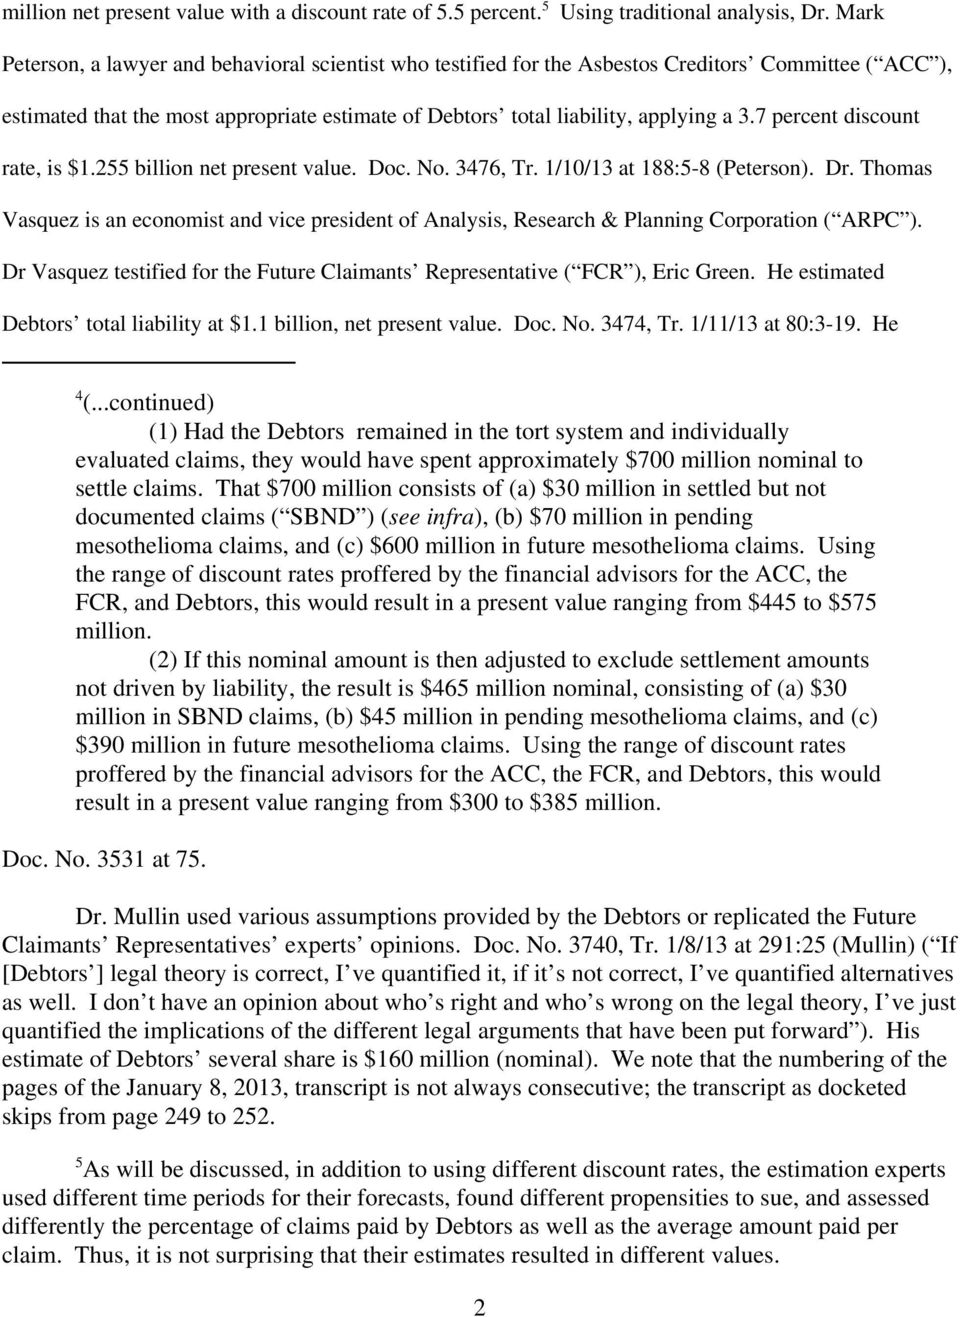 7 percent discount rate, is $1.255 billion net present value. Doc. No. 3476, Tr. 1/10/13 at 188:5-8 (Peterson). Dr.